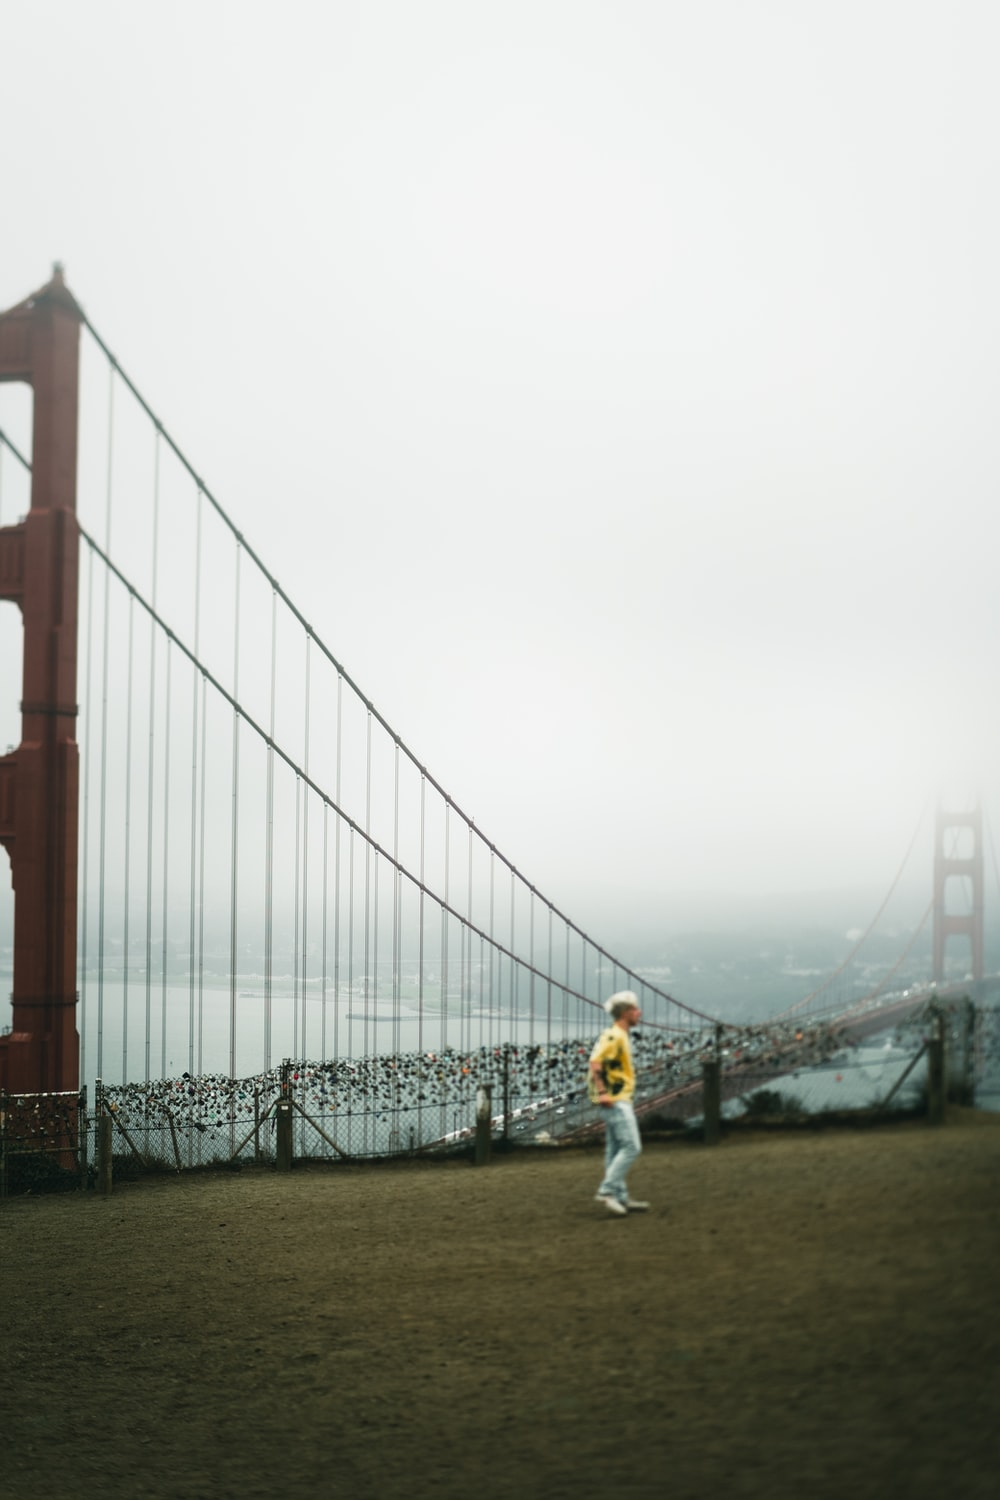 woman in white jacket standing on brown field near bridge during daytime